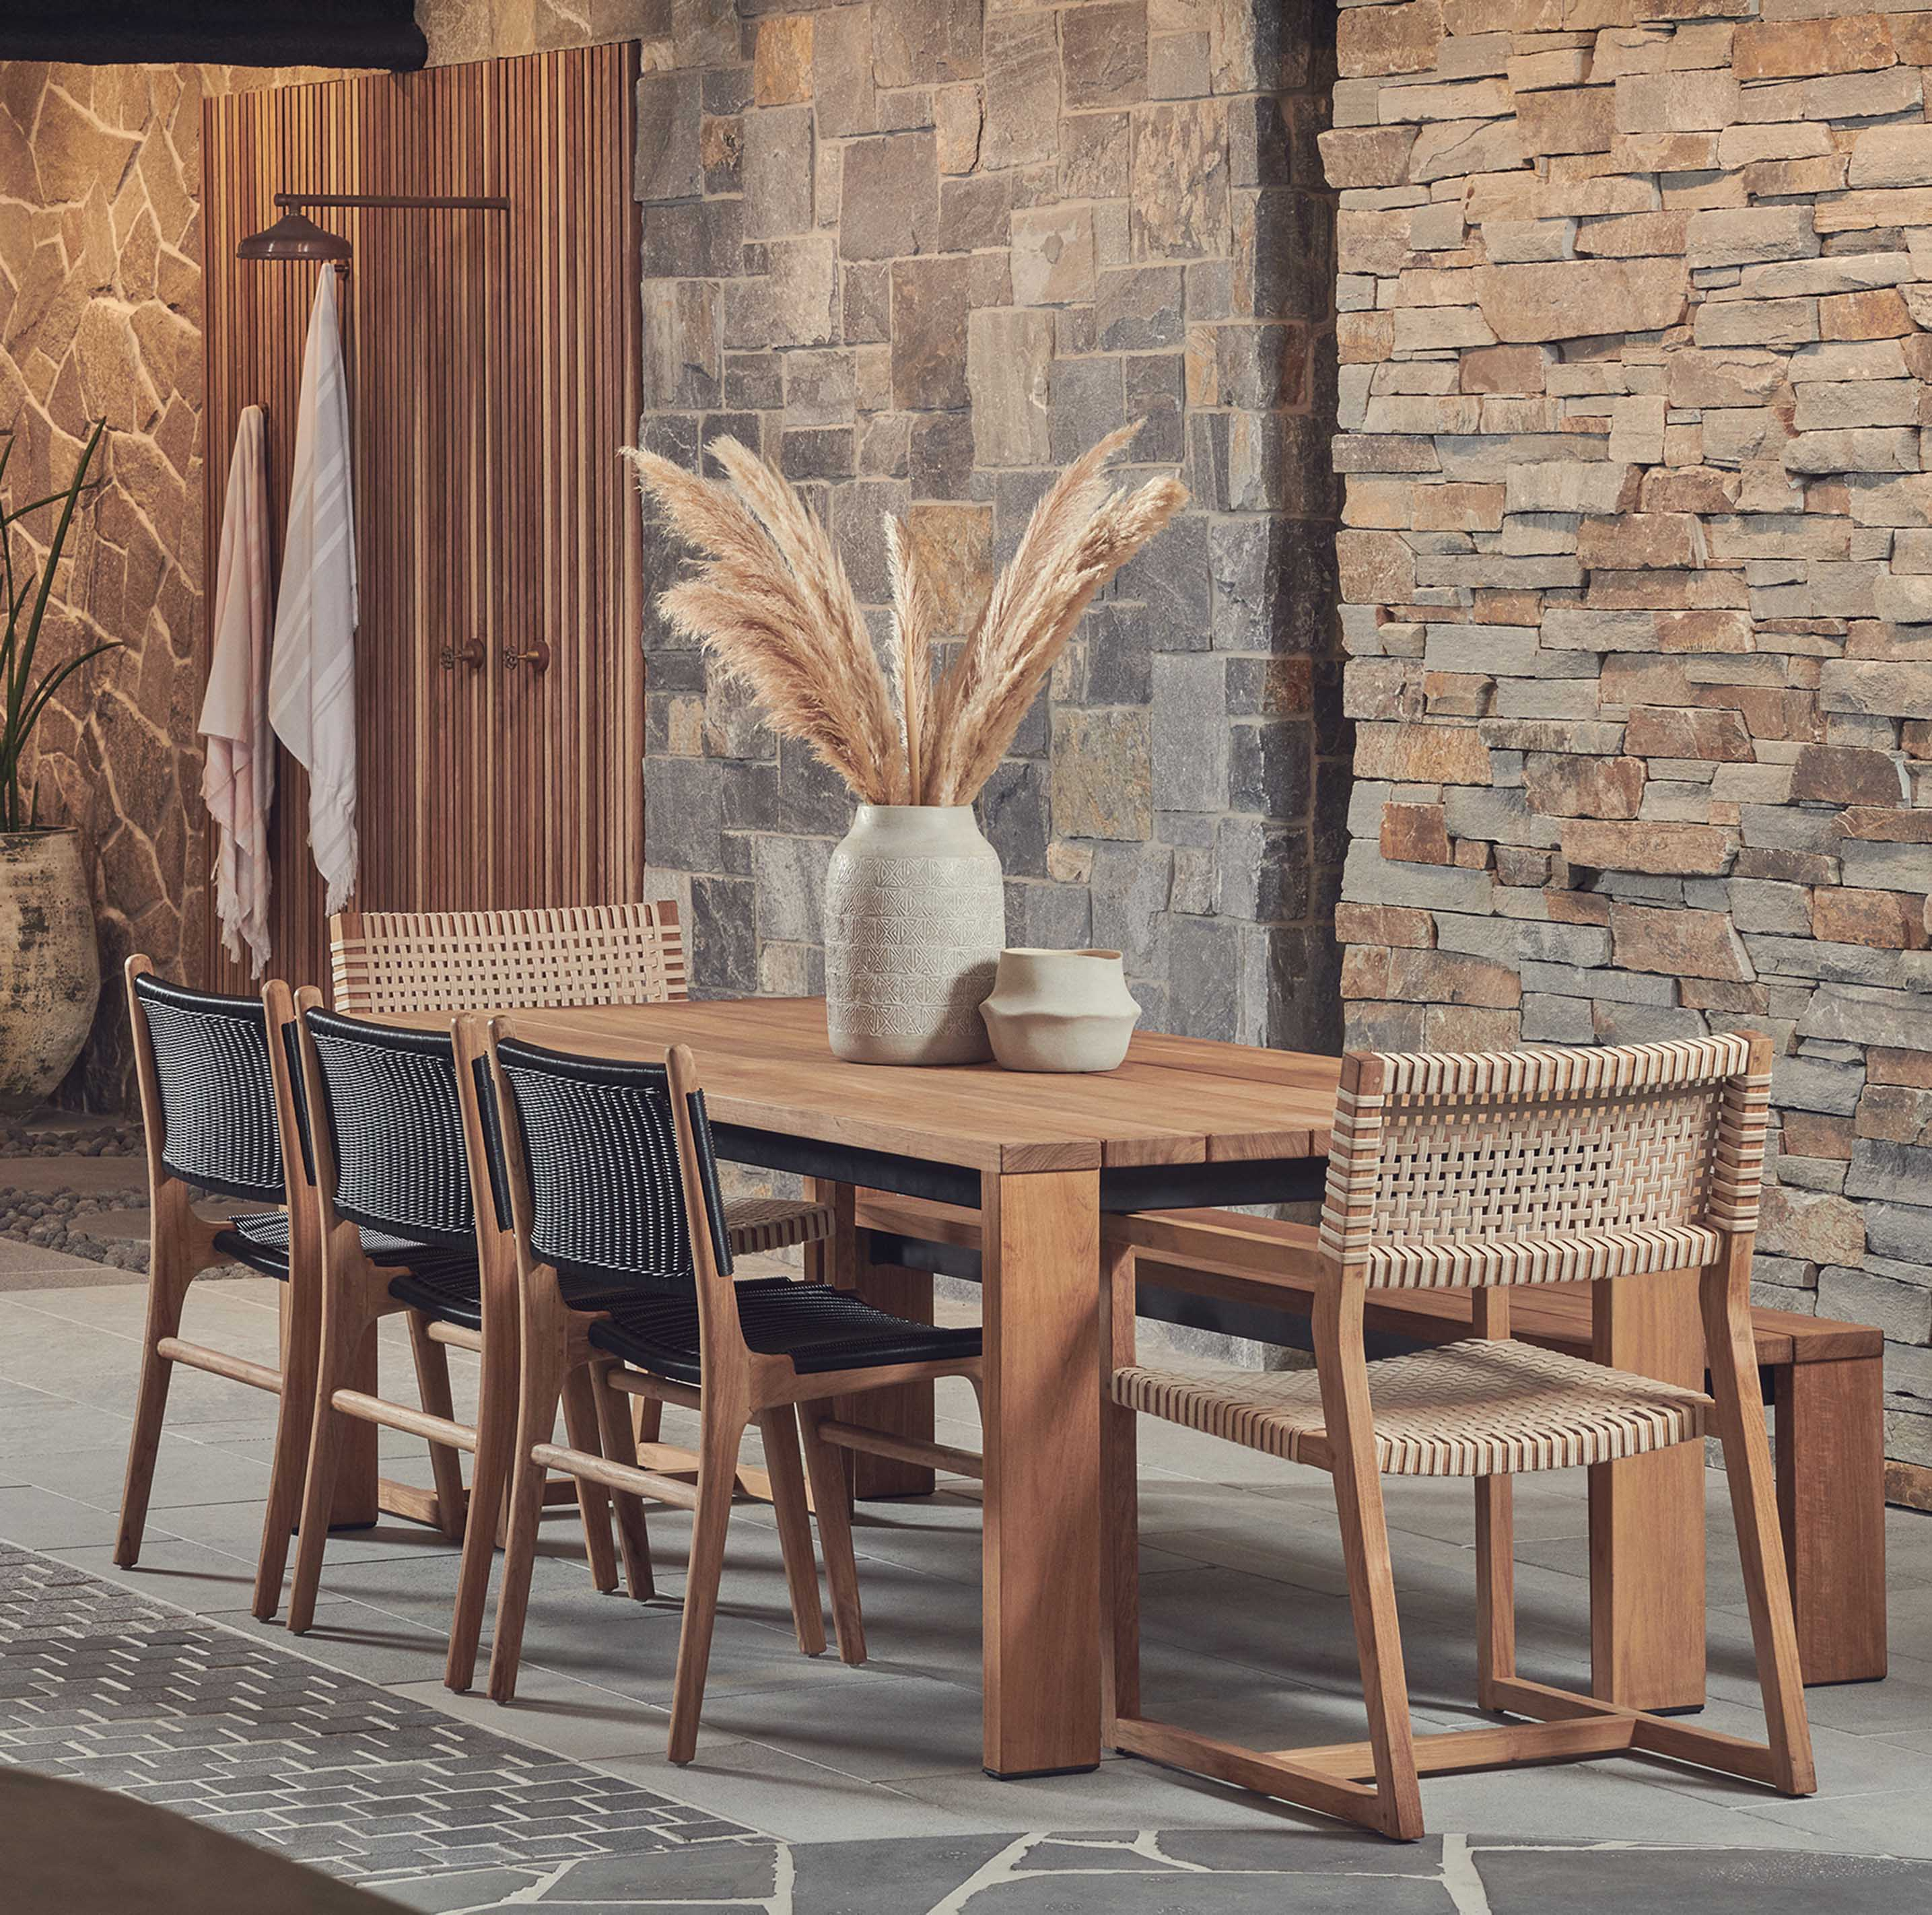 Blog hero-article-images benefits-of-teak-furniture-and-care-tips